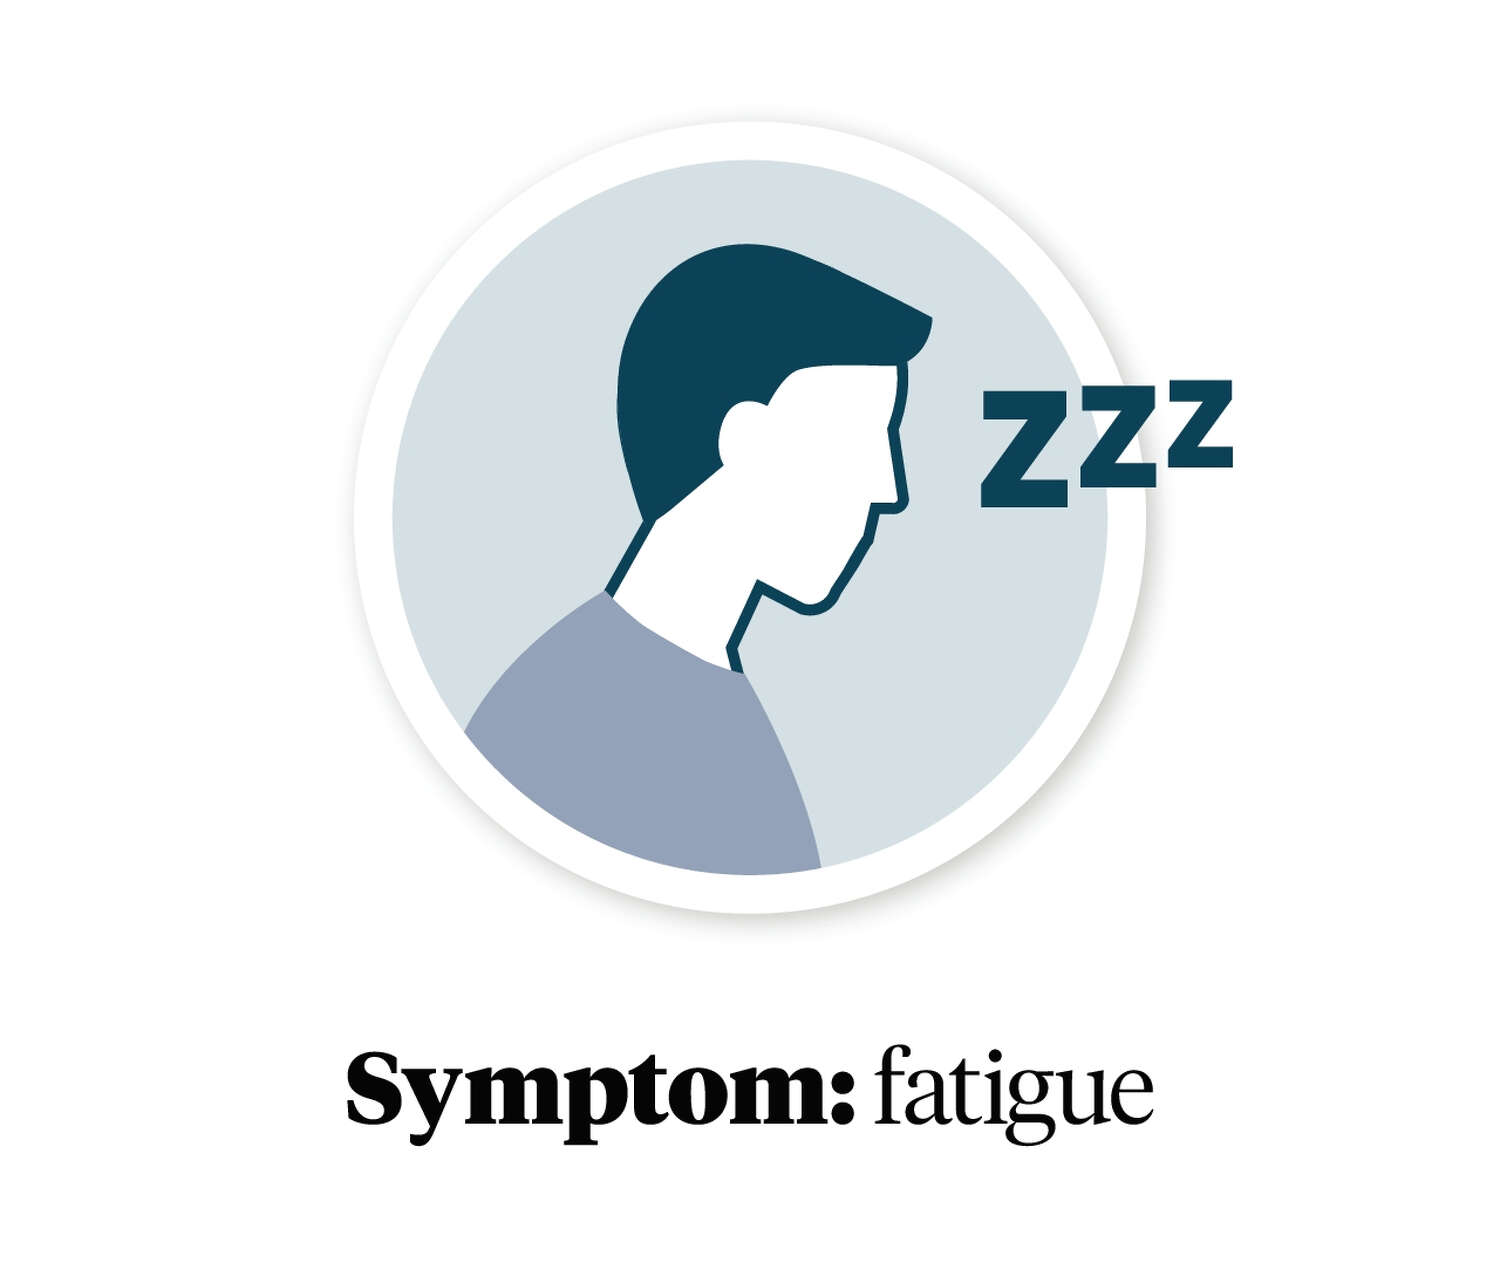 Graphic showing a person with fatigue